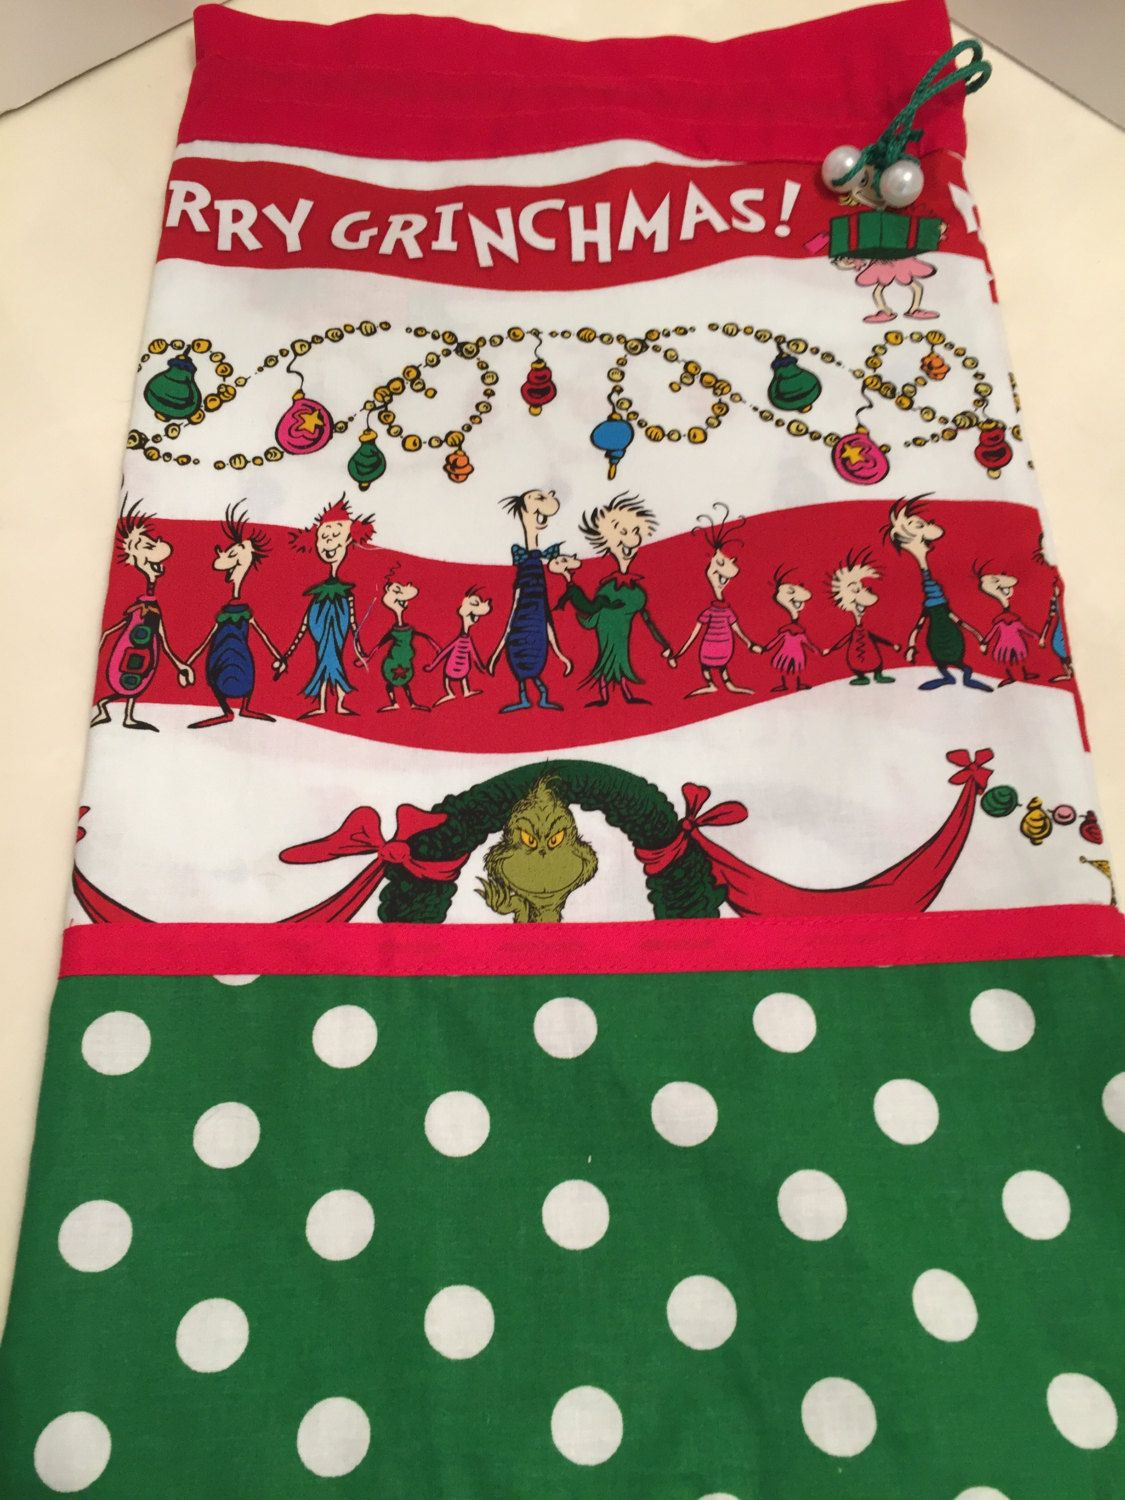 the grinch cartoon character children gift wrap christmas gift bag cotton fabric large cloth bag drawstring bag birthday dr seuss pinned by